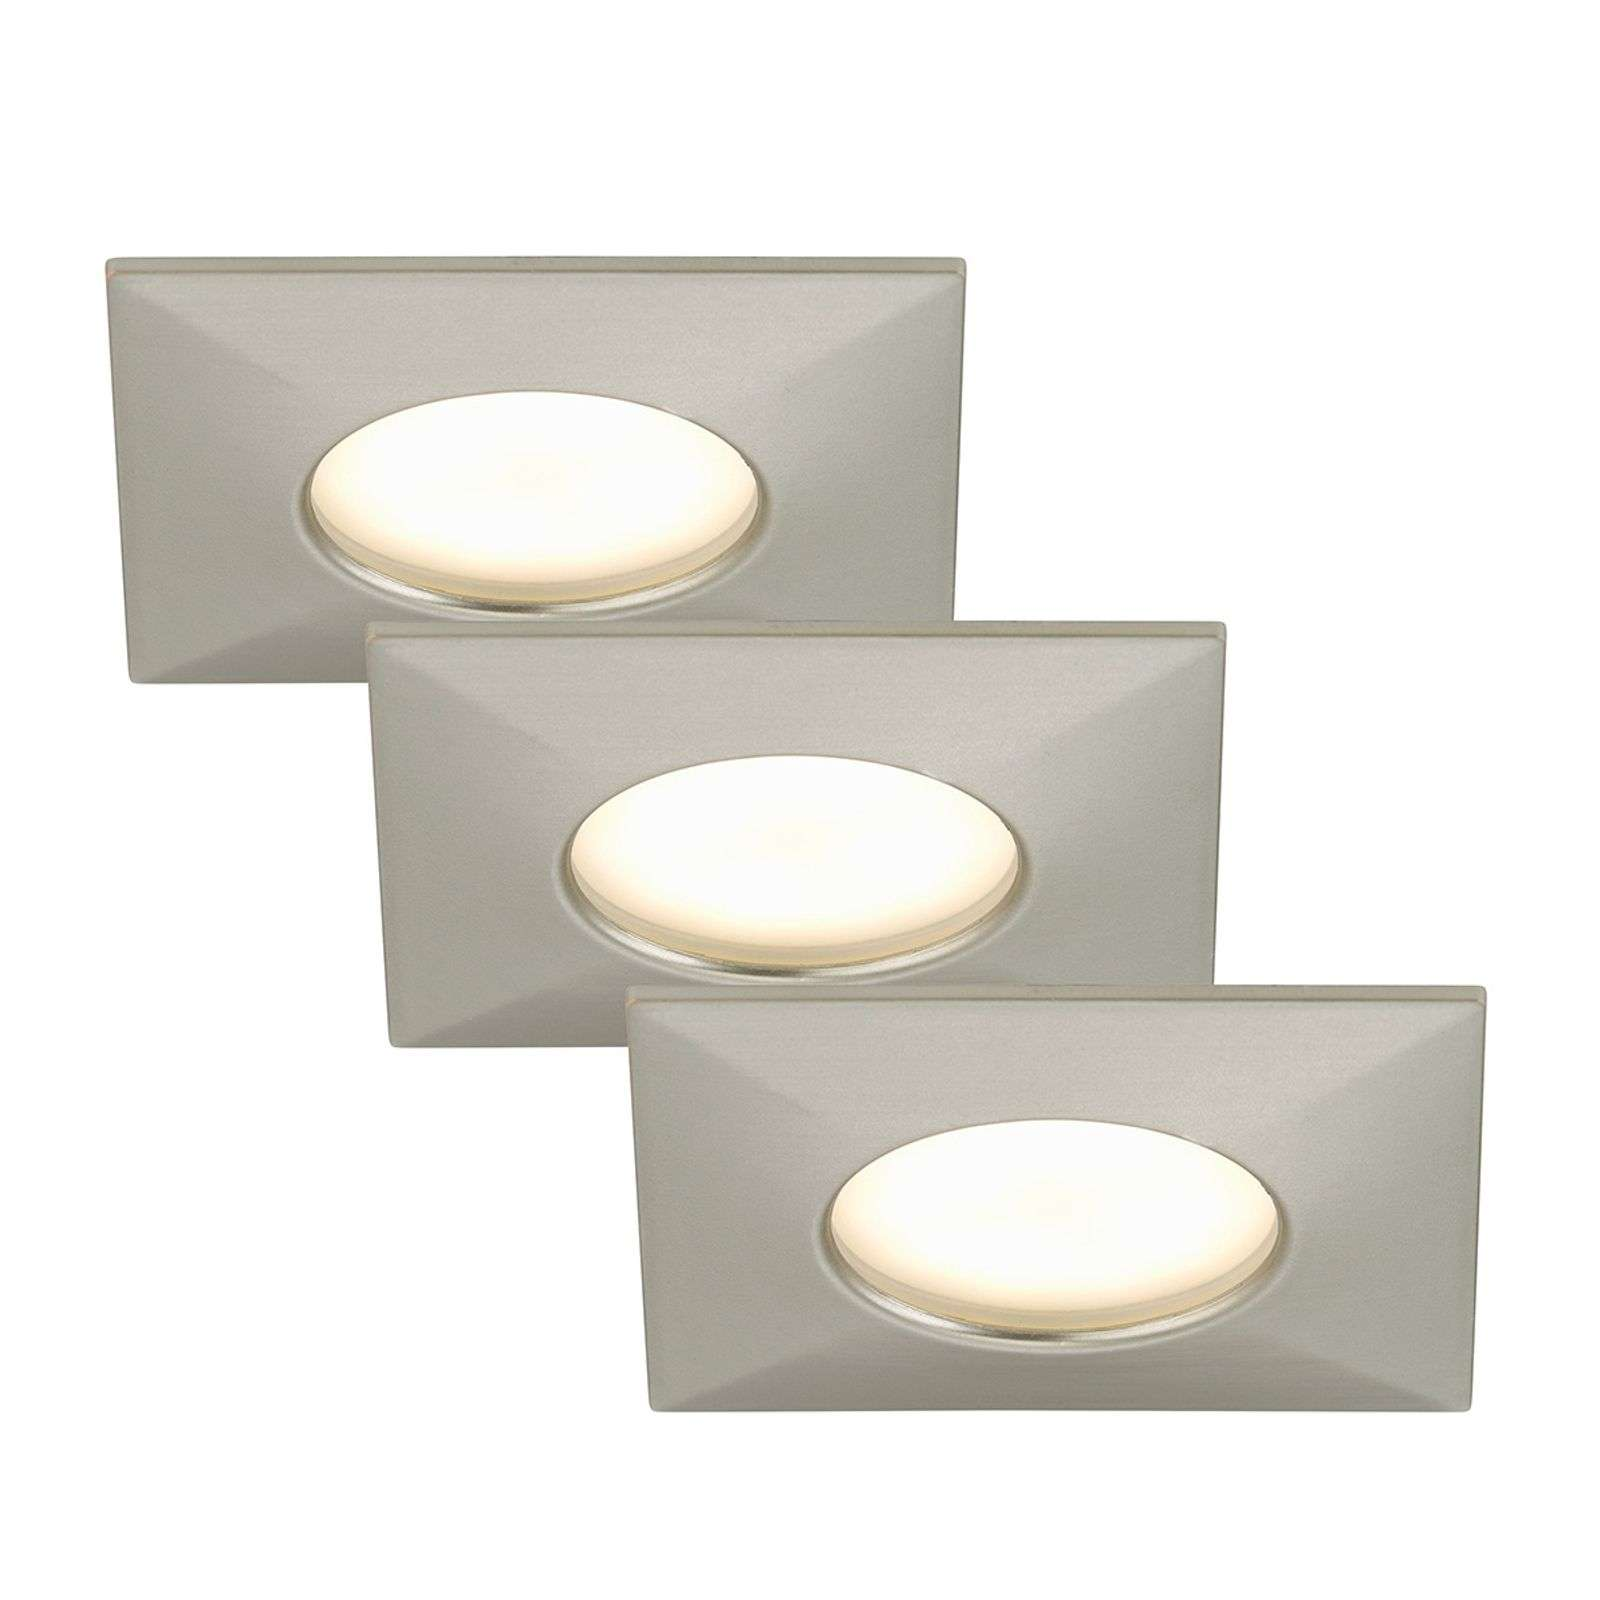 3 spots encastrés LED Luca IP44 nickel mat